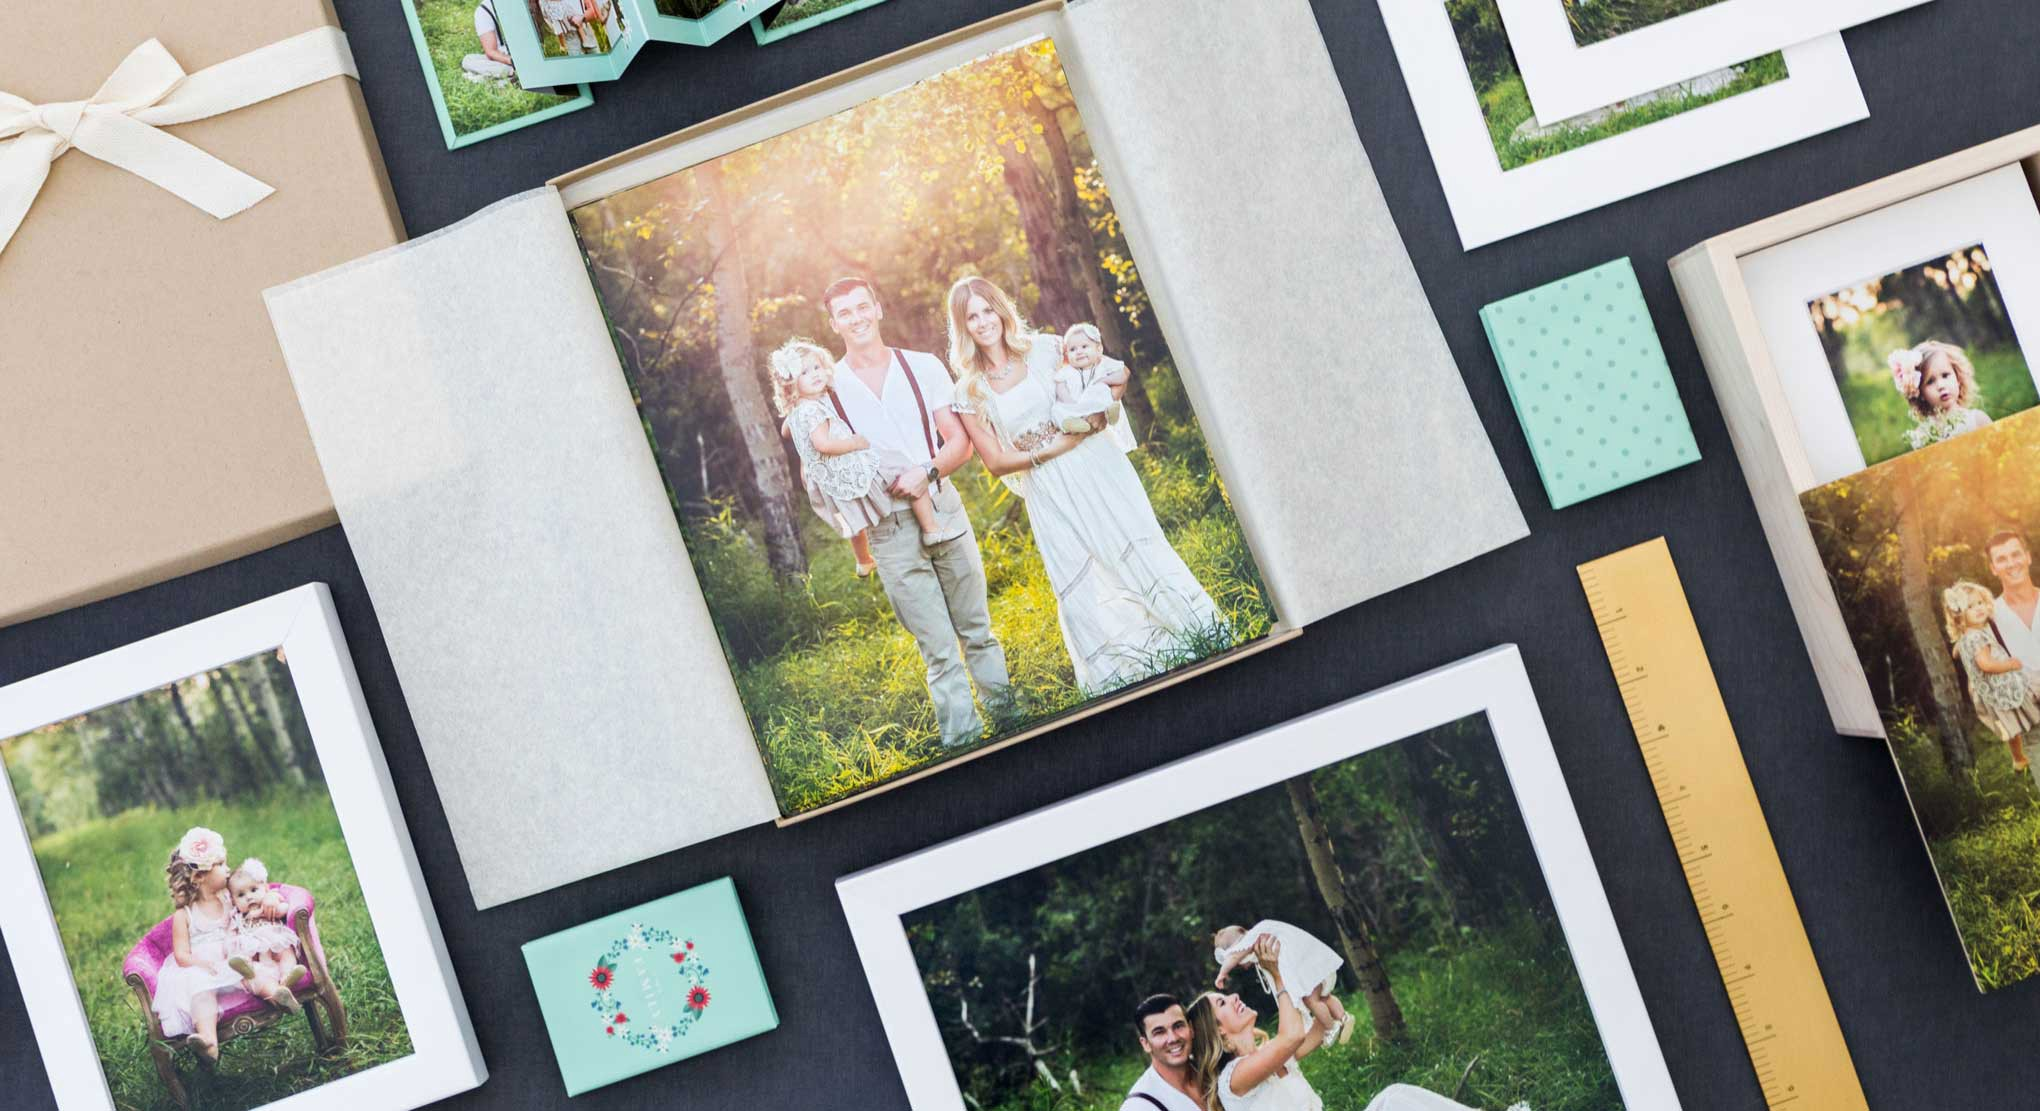 All About Photo Prints! - Print Worthy